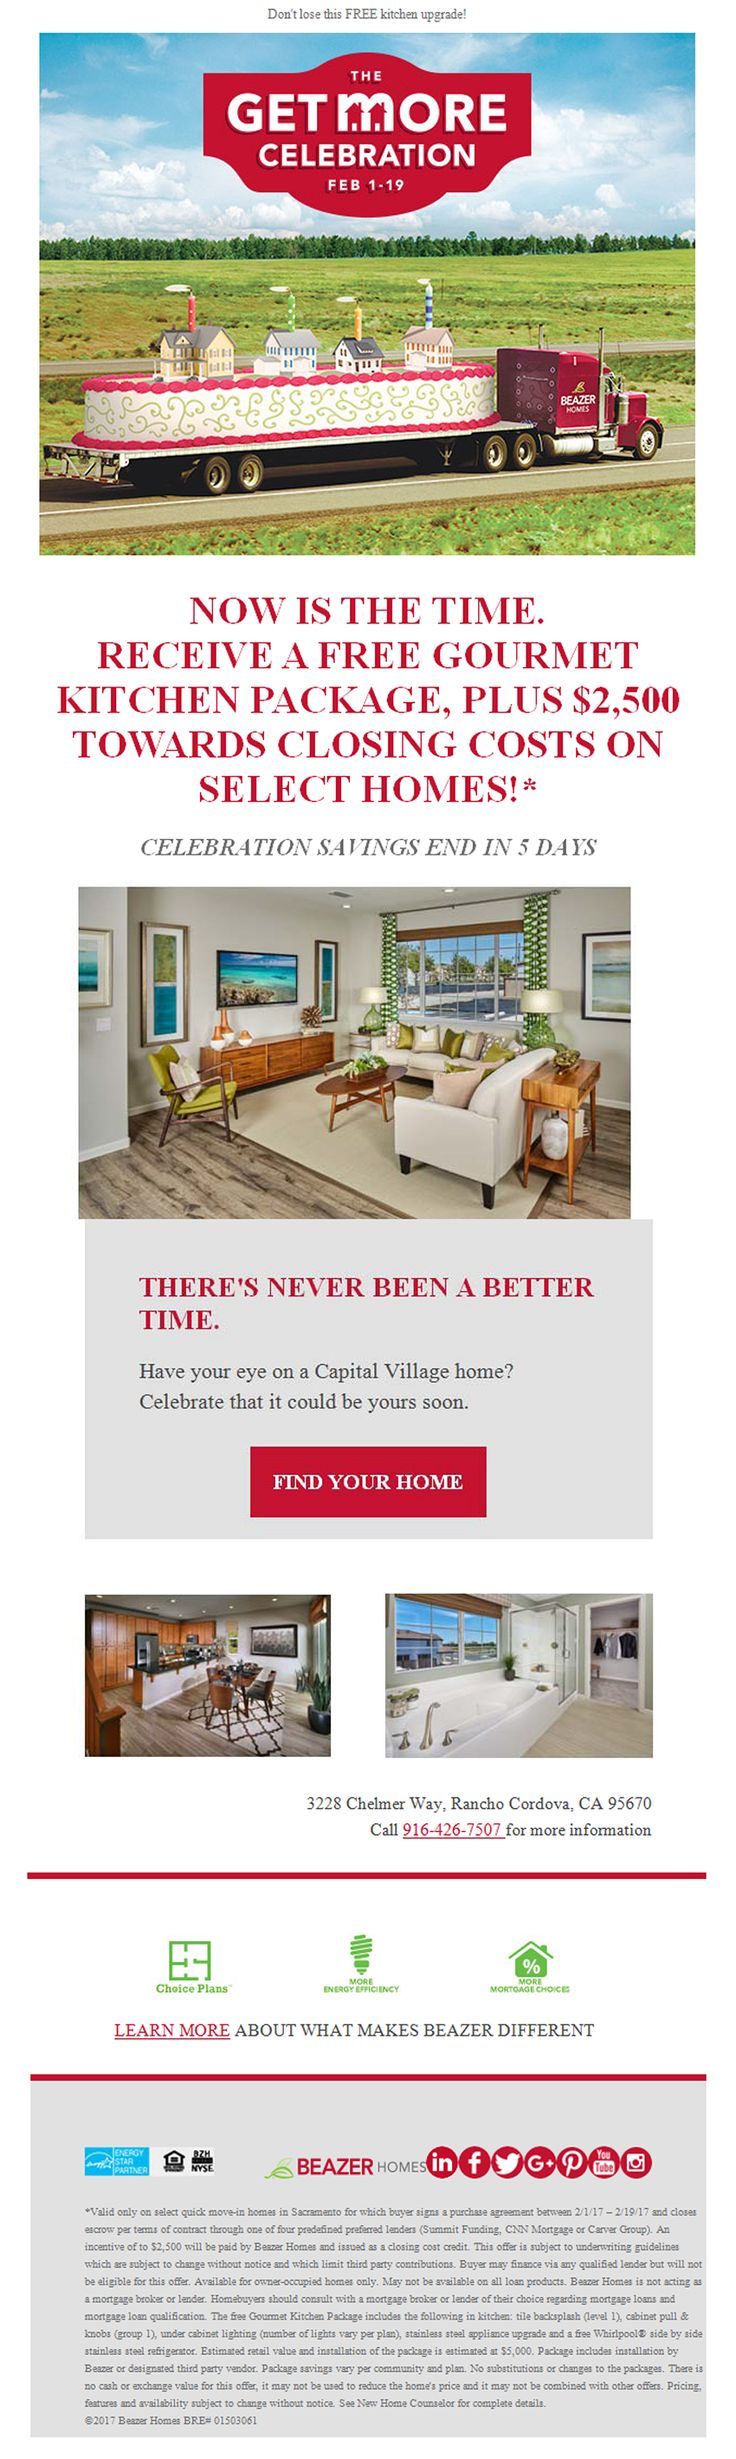 New Homes fro Sale in Rancho Cordova, California  Major sales event. Going on now!  Free Gourmet Kitchen Package, Plus $2,500 Toward Closing Costs on Select Homes.  https://www.beazer.com/search-CA-sacramento